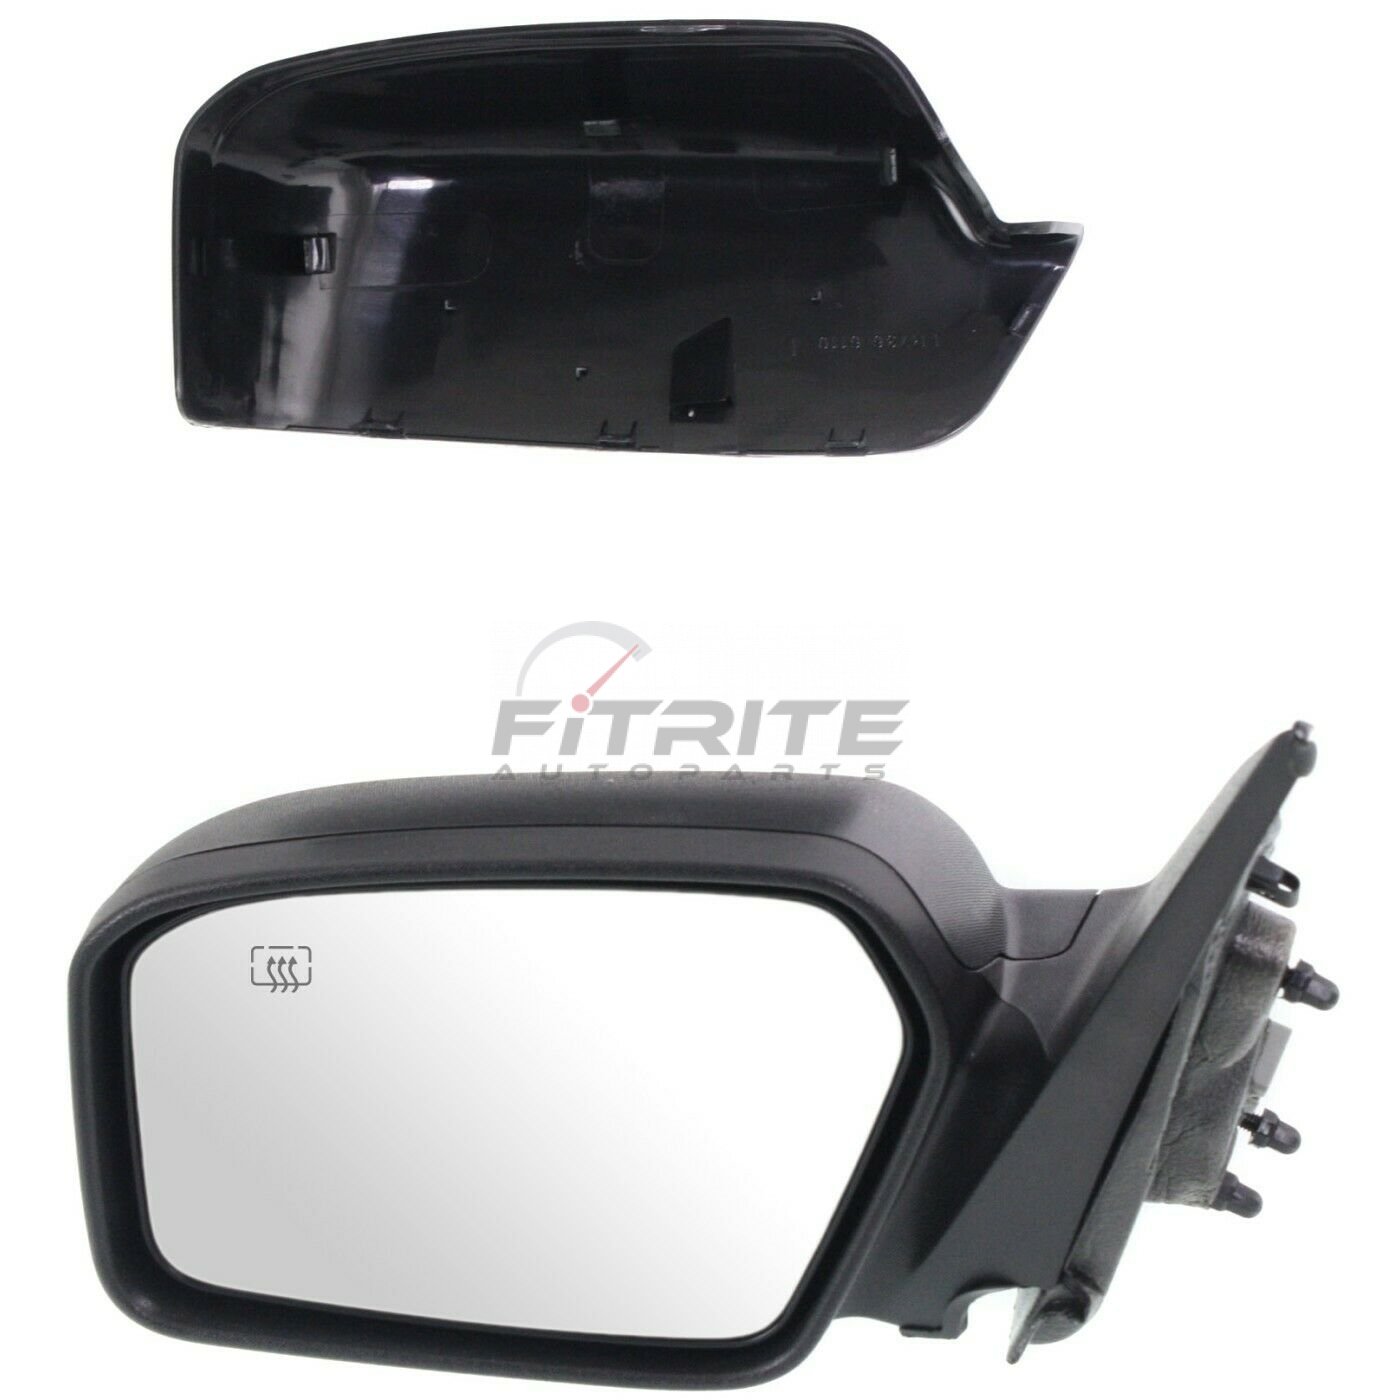 New FO1321267 Passenger Side Mirror for Ford Fusion 2006-2012